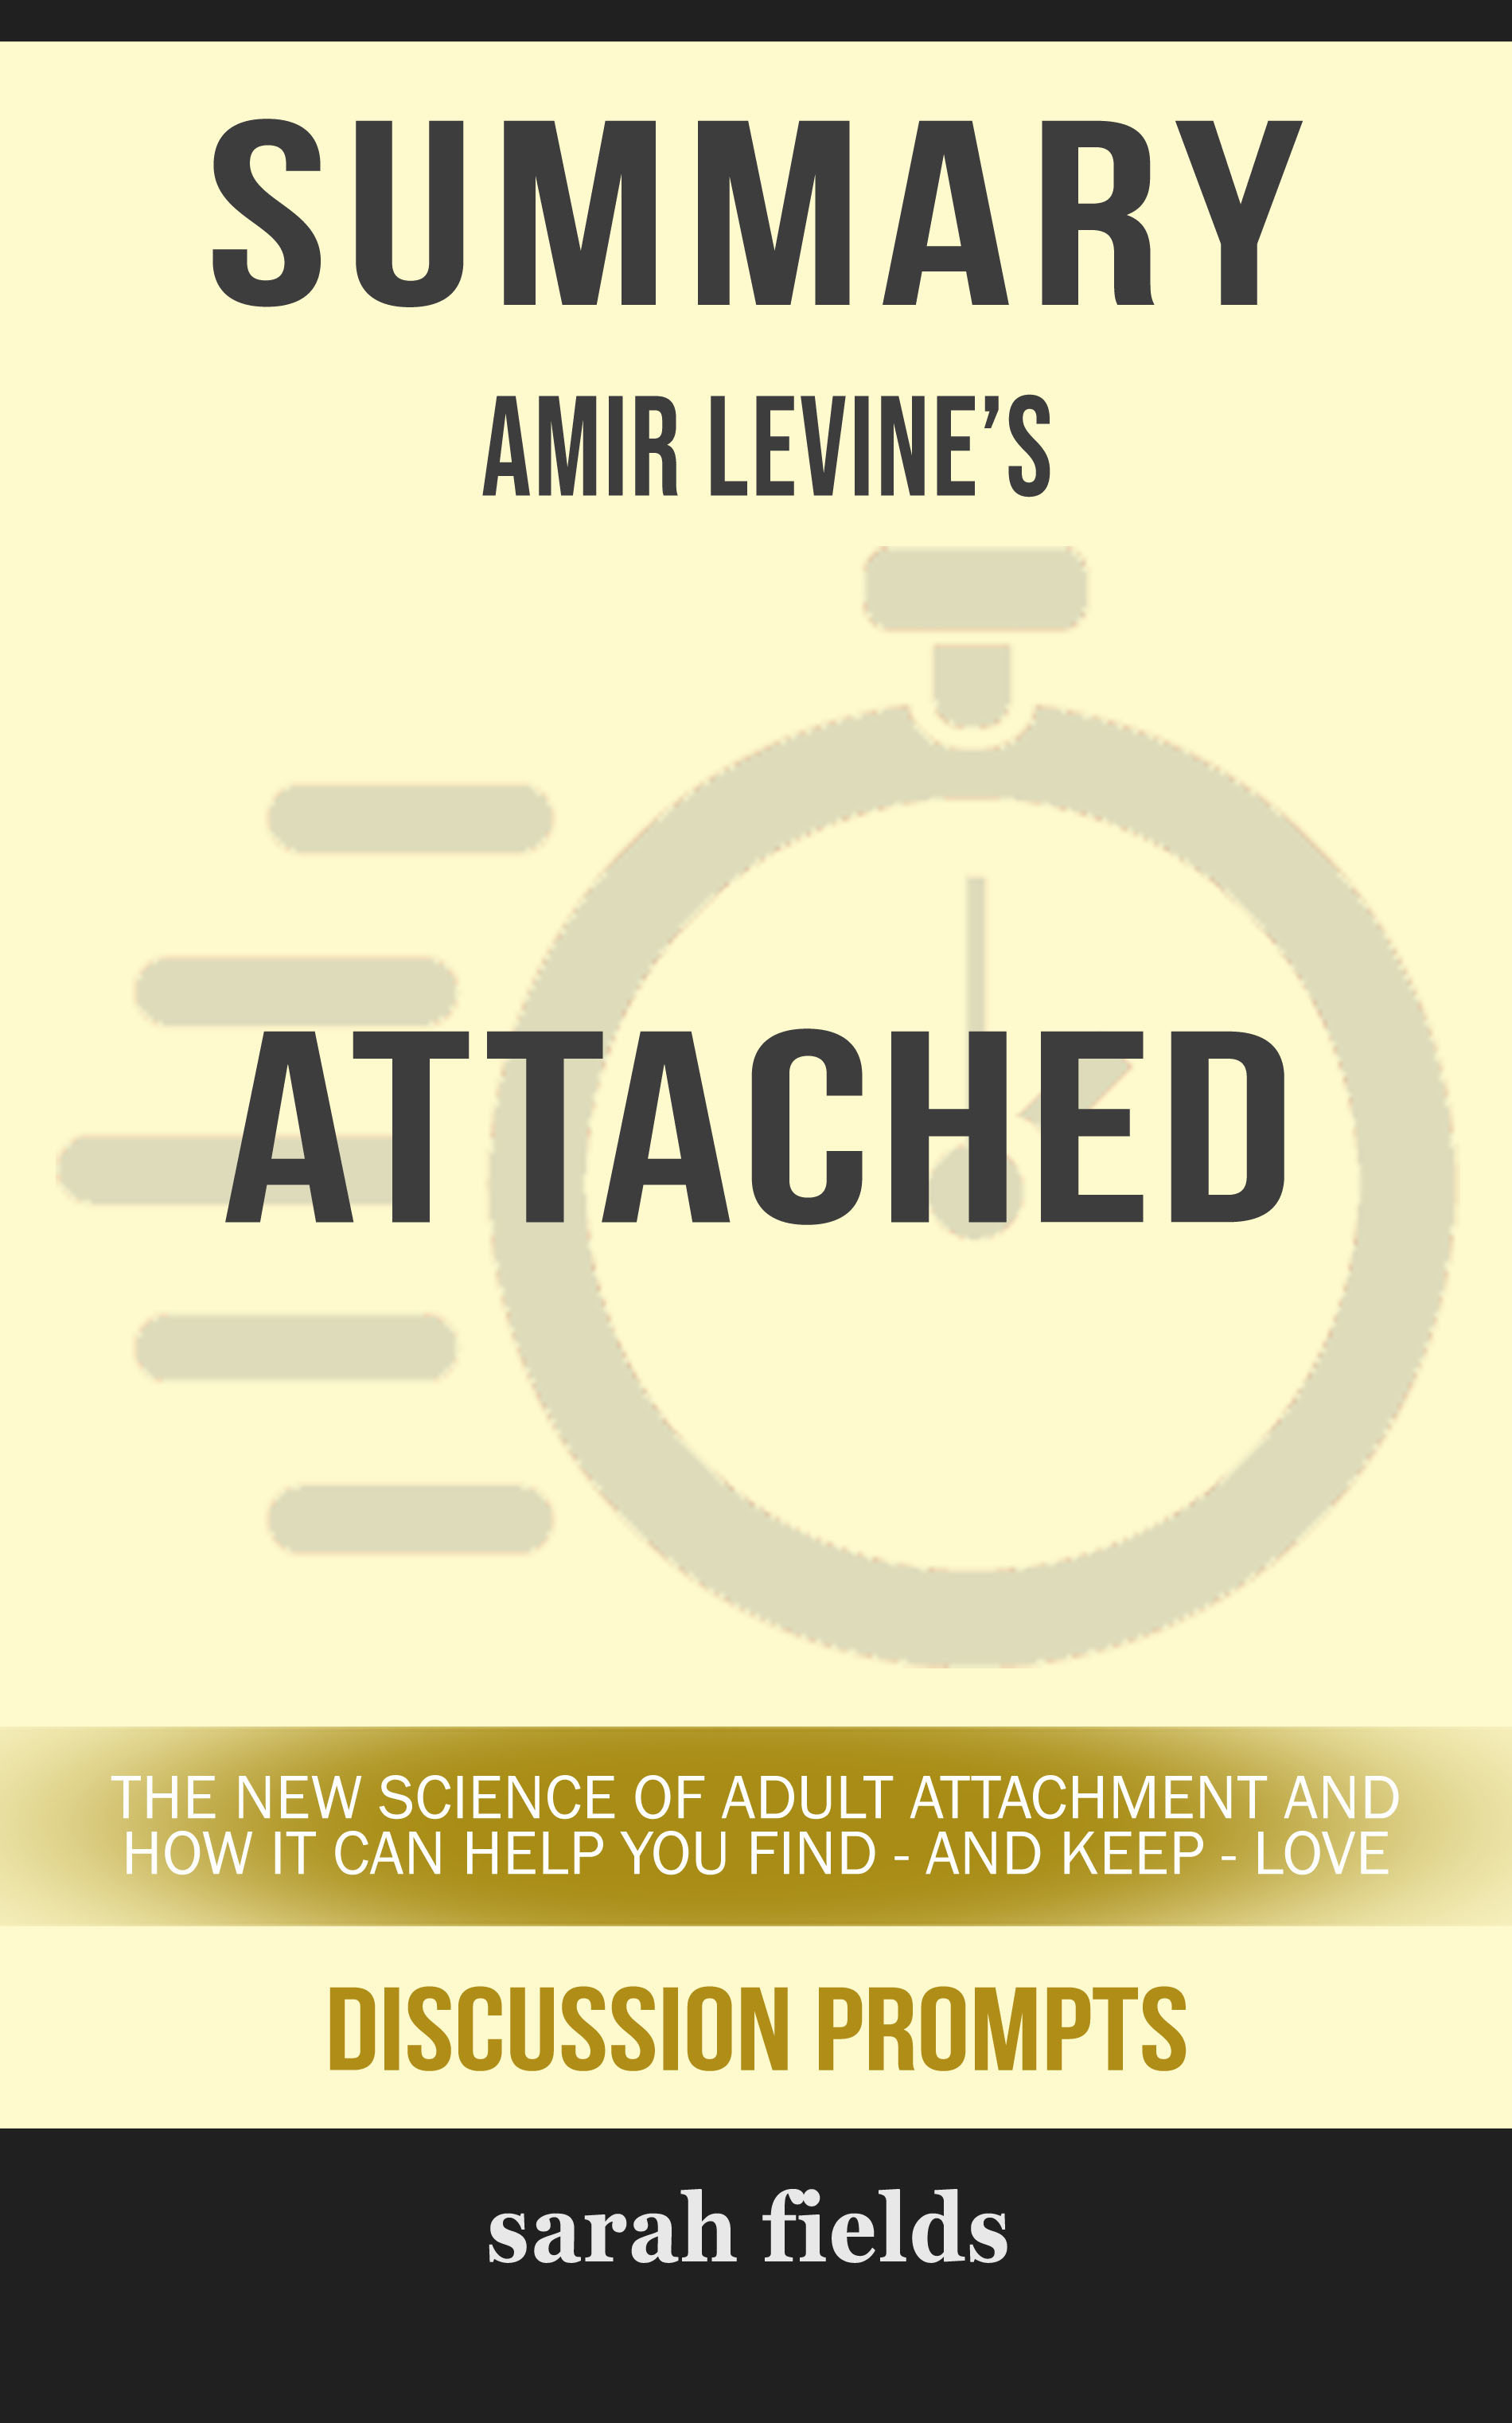 Summary of Attached: The New Science of Adult Attachment and How It Can Help YouFind - and Keep - Love by Amir Levine